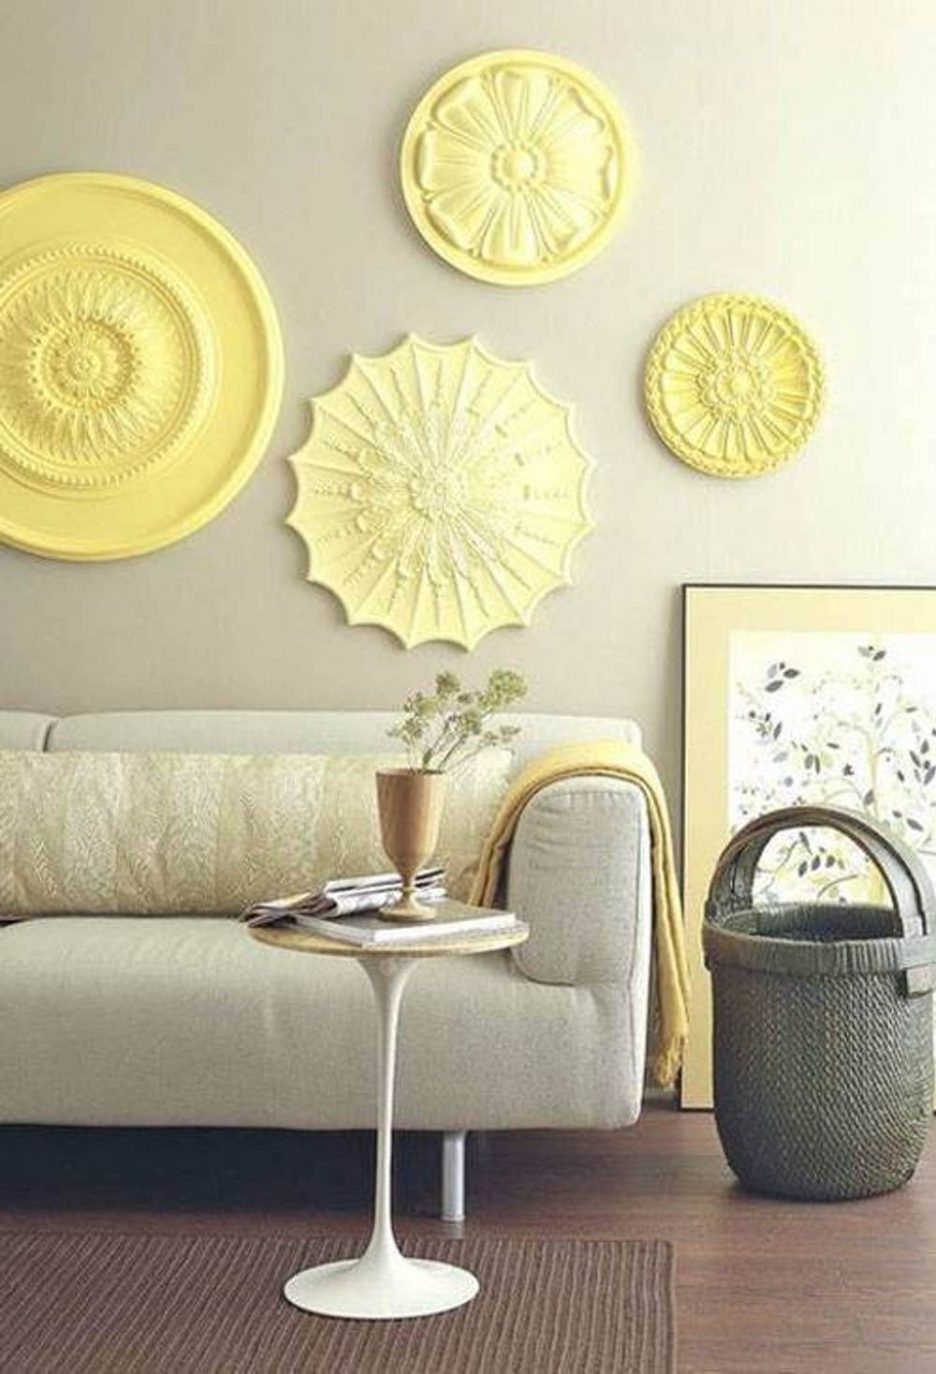 Explore Photos of Yellow Wall Accents (Showing 5 of 15 Photos)